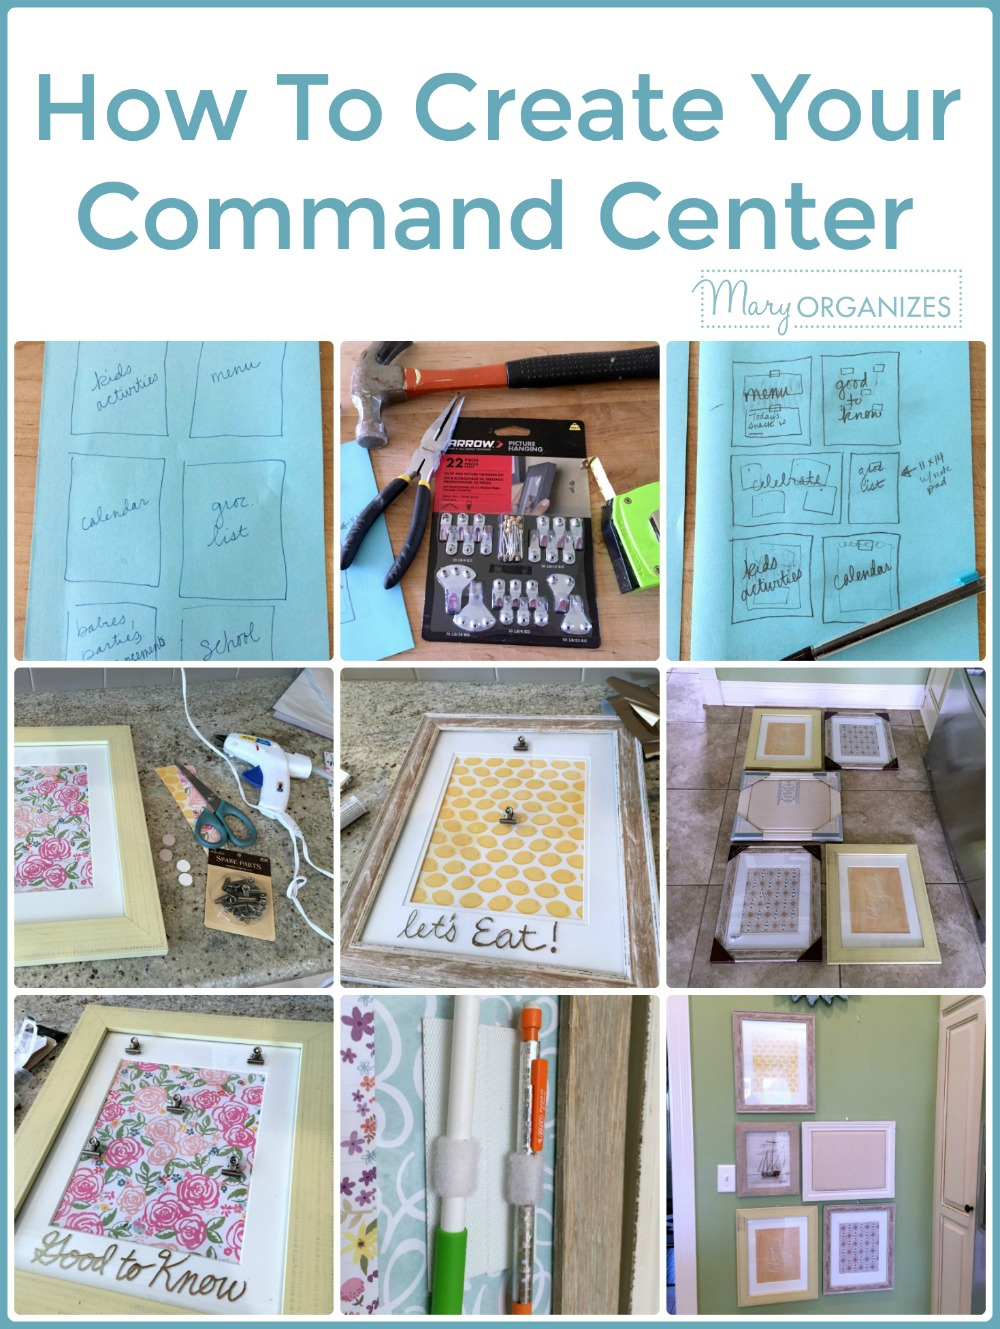 How To Create Your Command Center -v